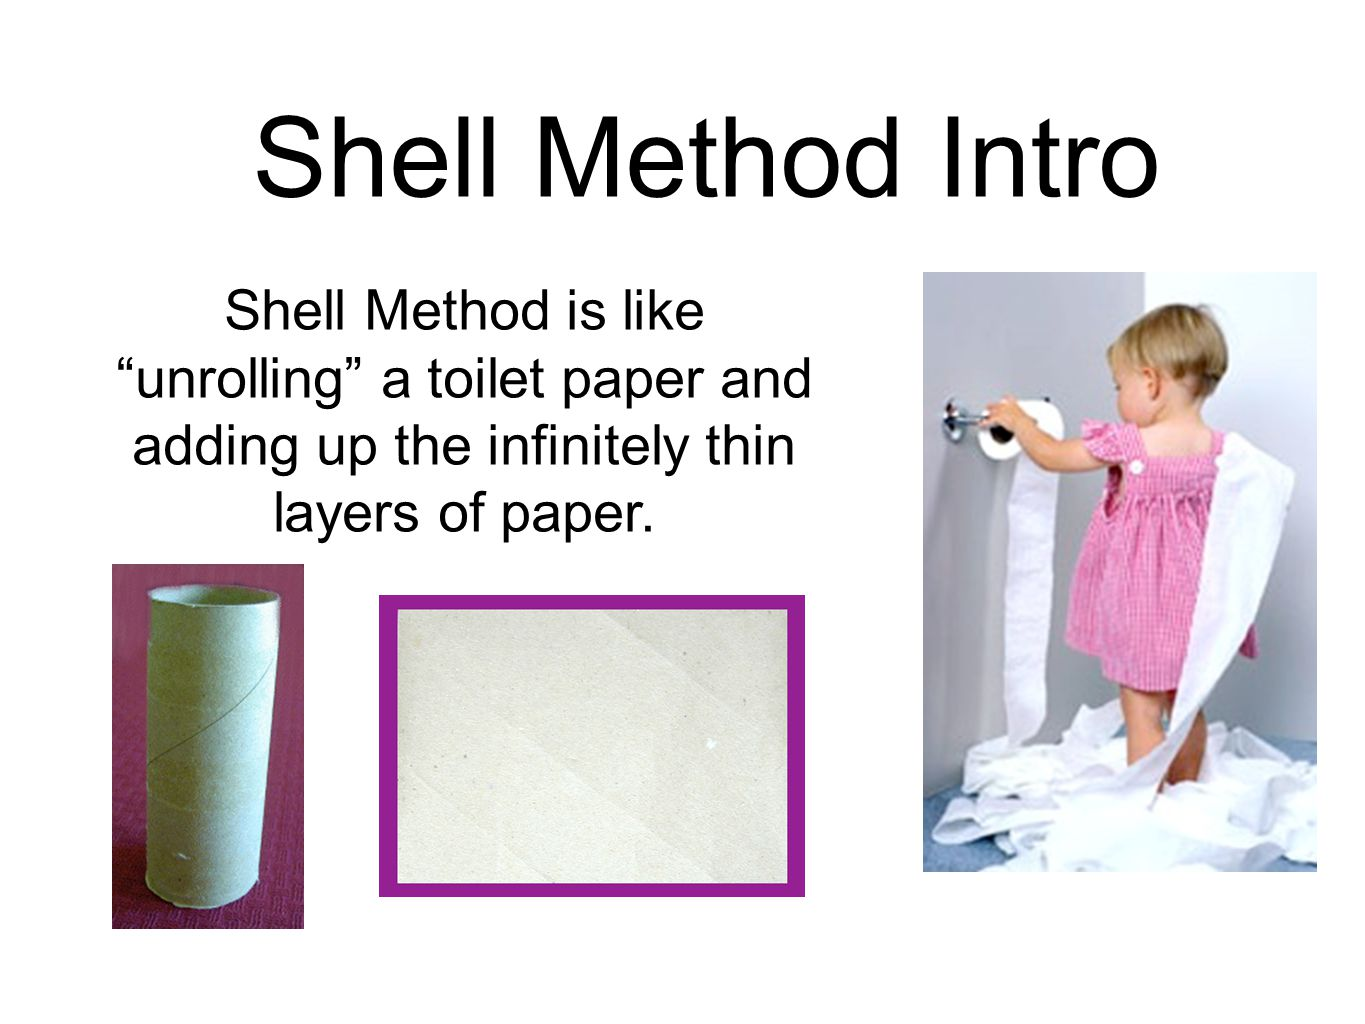 Shell Method Intro Shell Method is like unrolling a toilet paper and adding up the infinitely thin layers of paper.